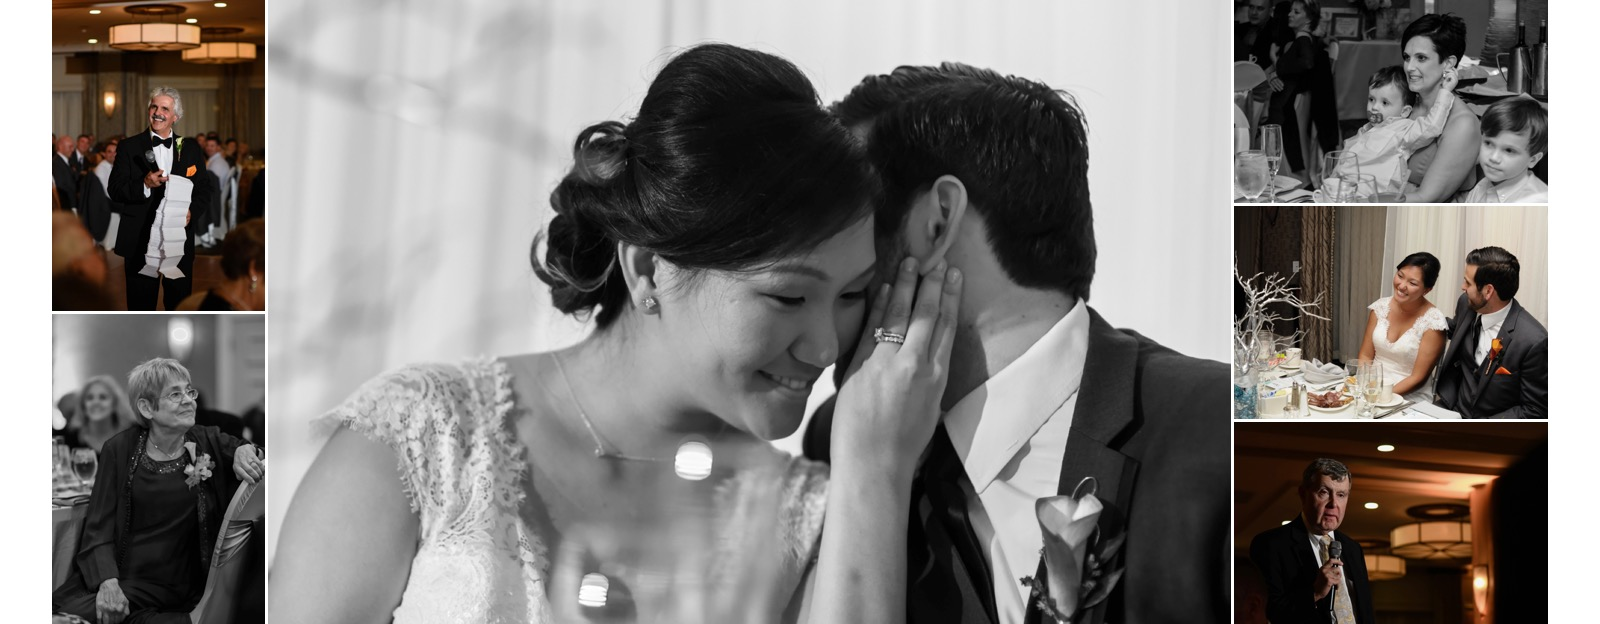 rochester wedding at Woodcliff by McKay's photography